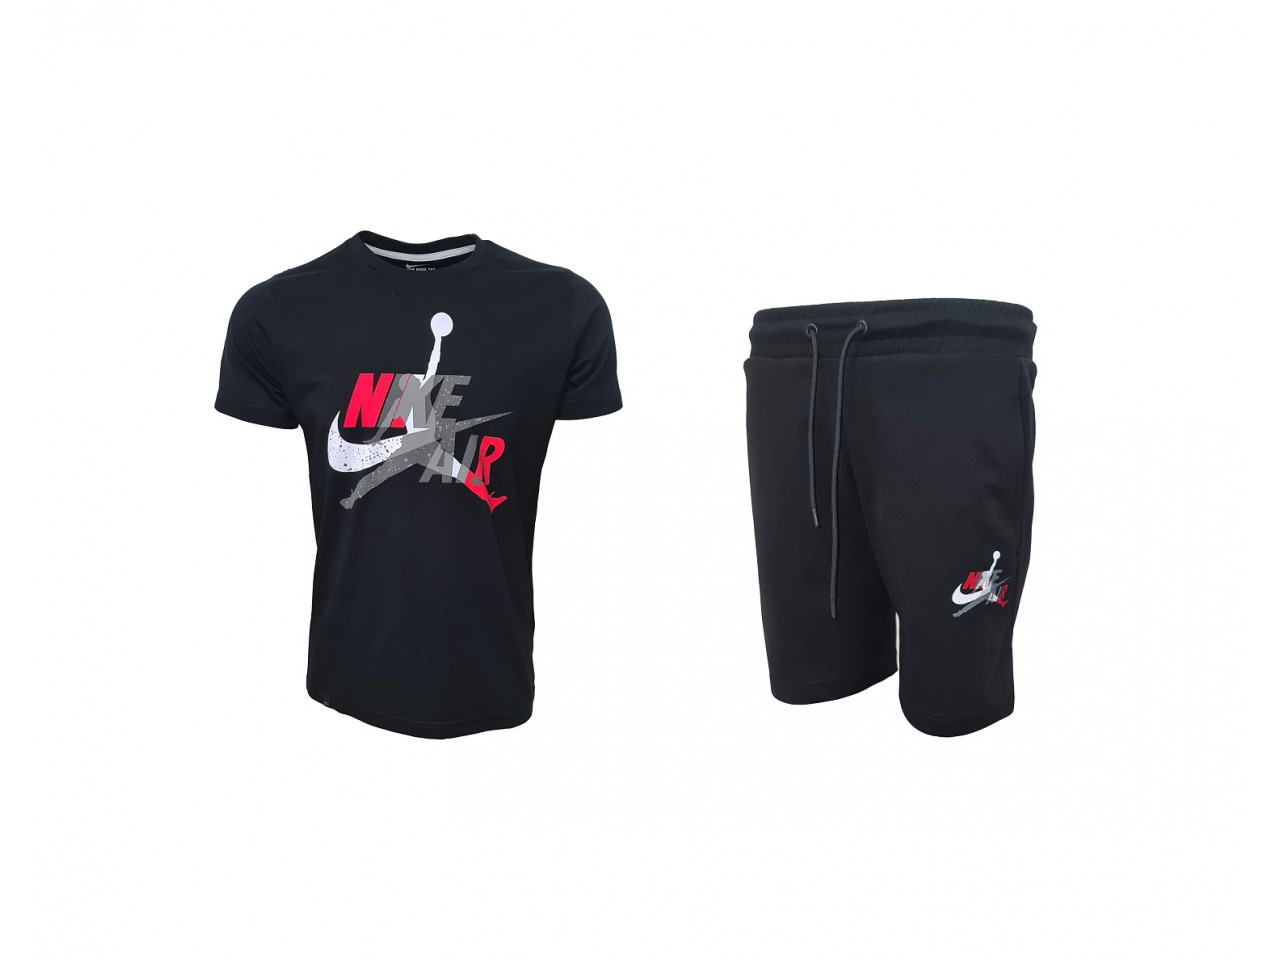 Nike AIR Shorts+ T-shirt Black